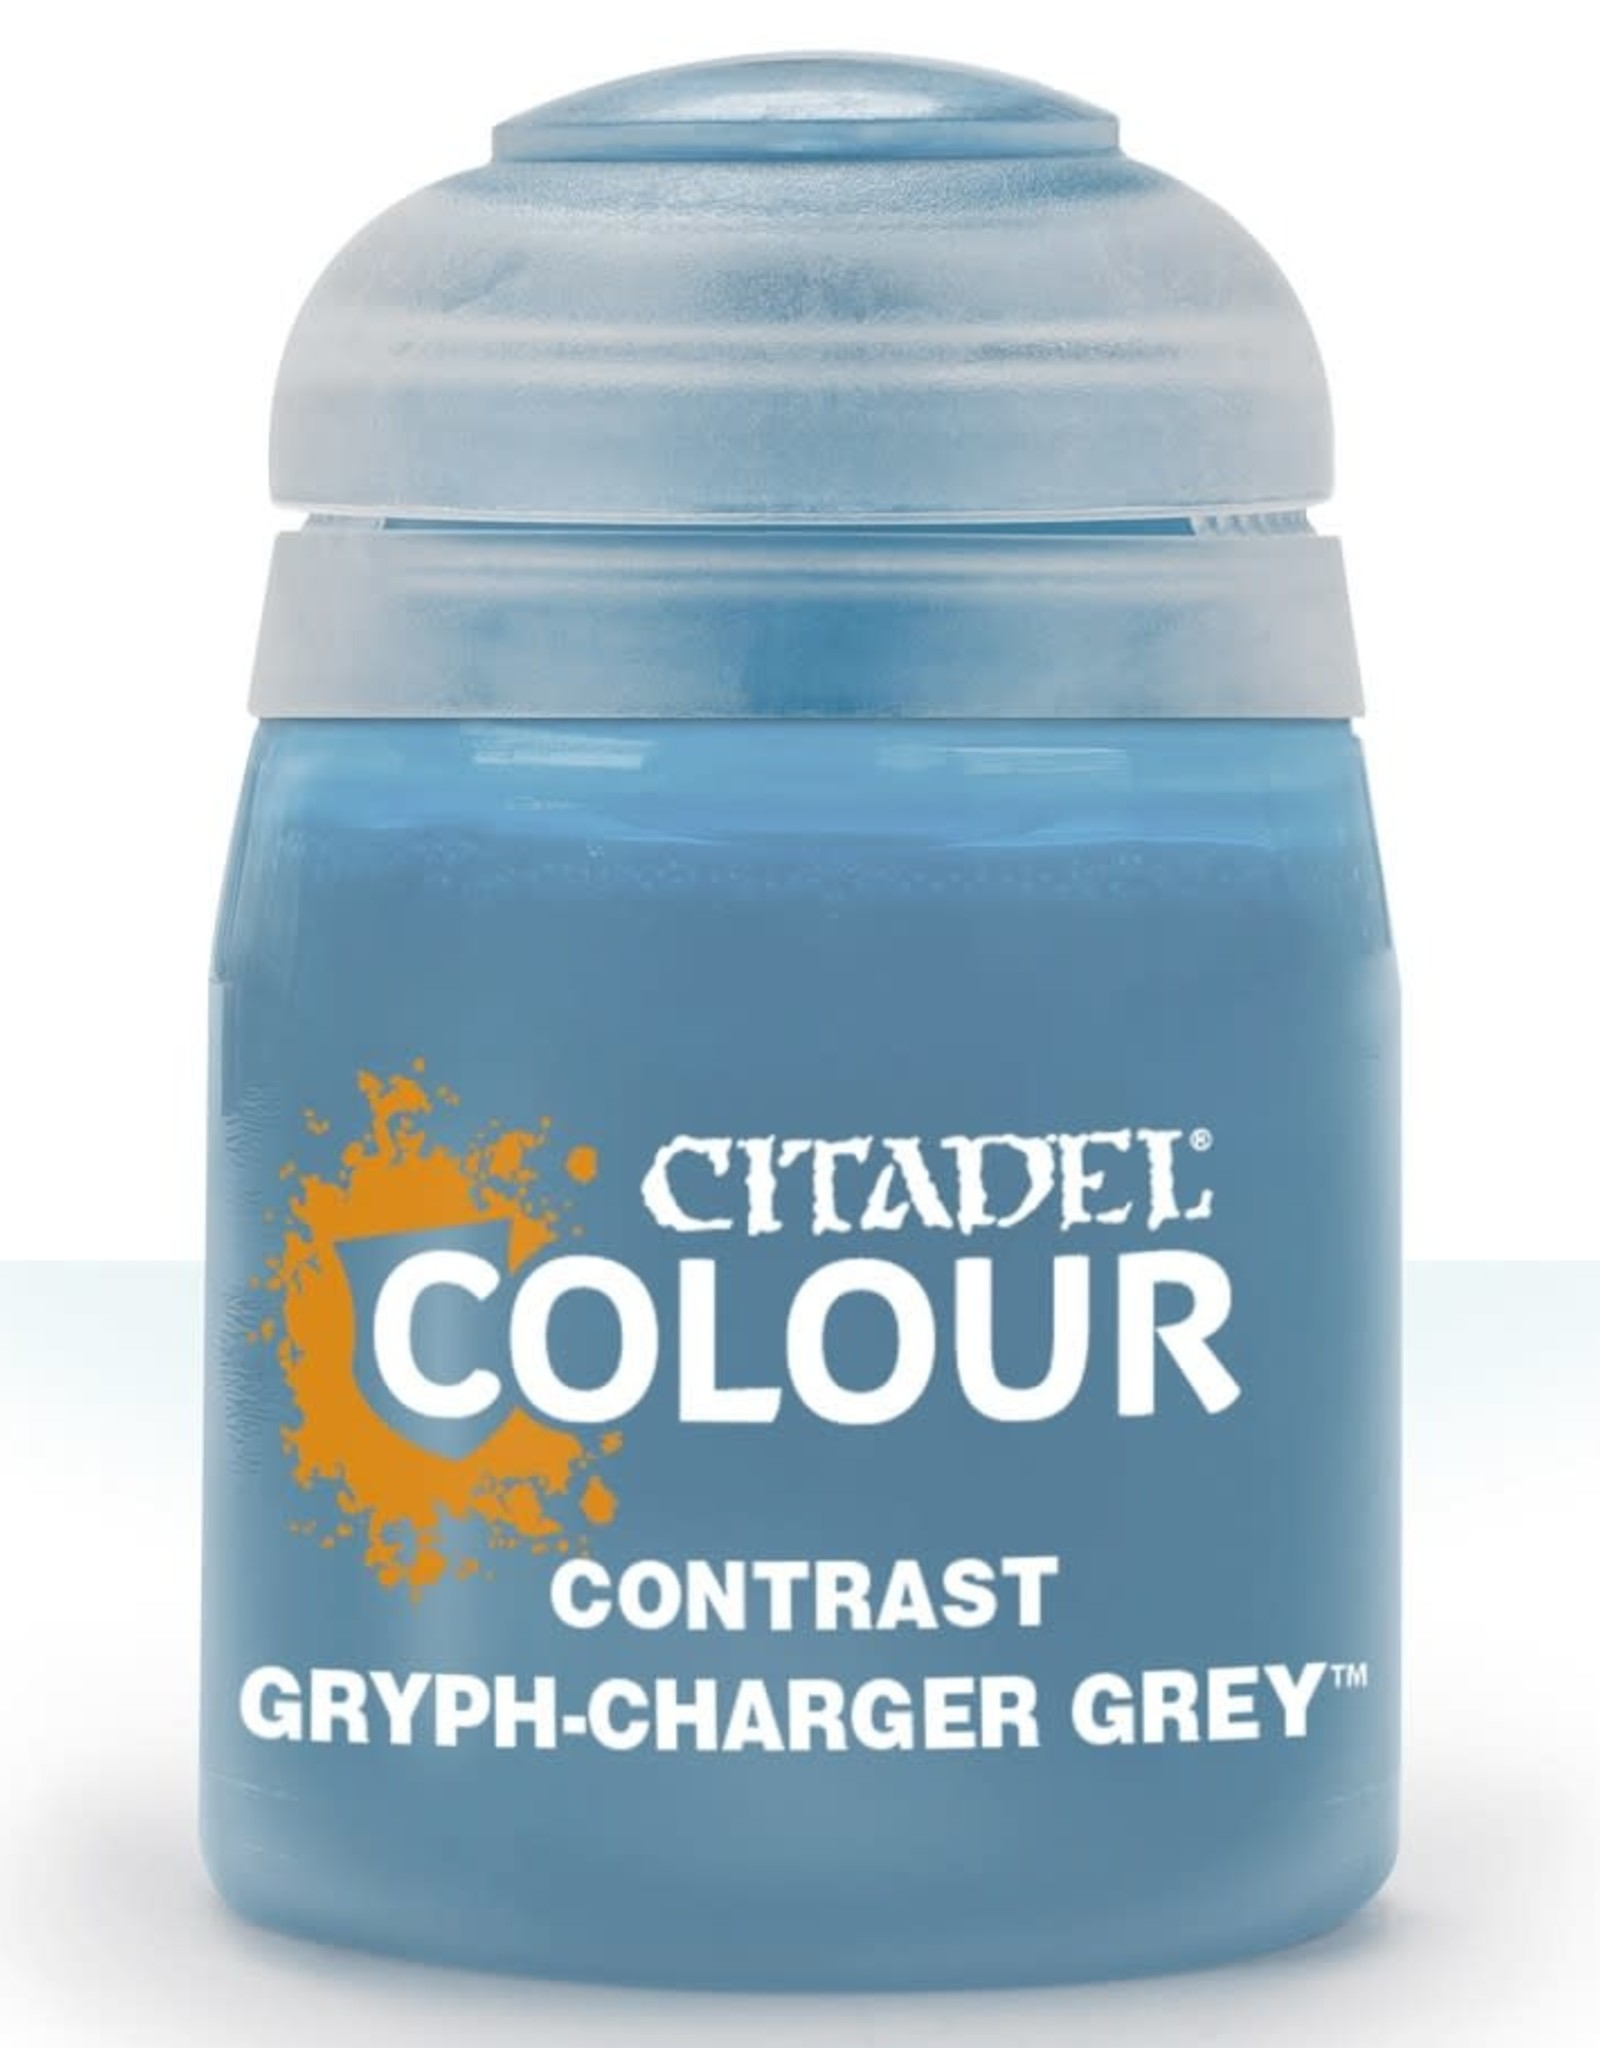 Citadel Contrast Paint: Gryphcharger Grey